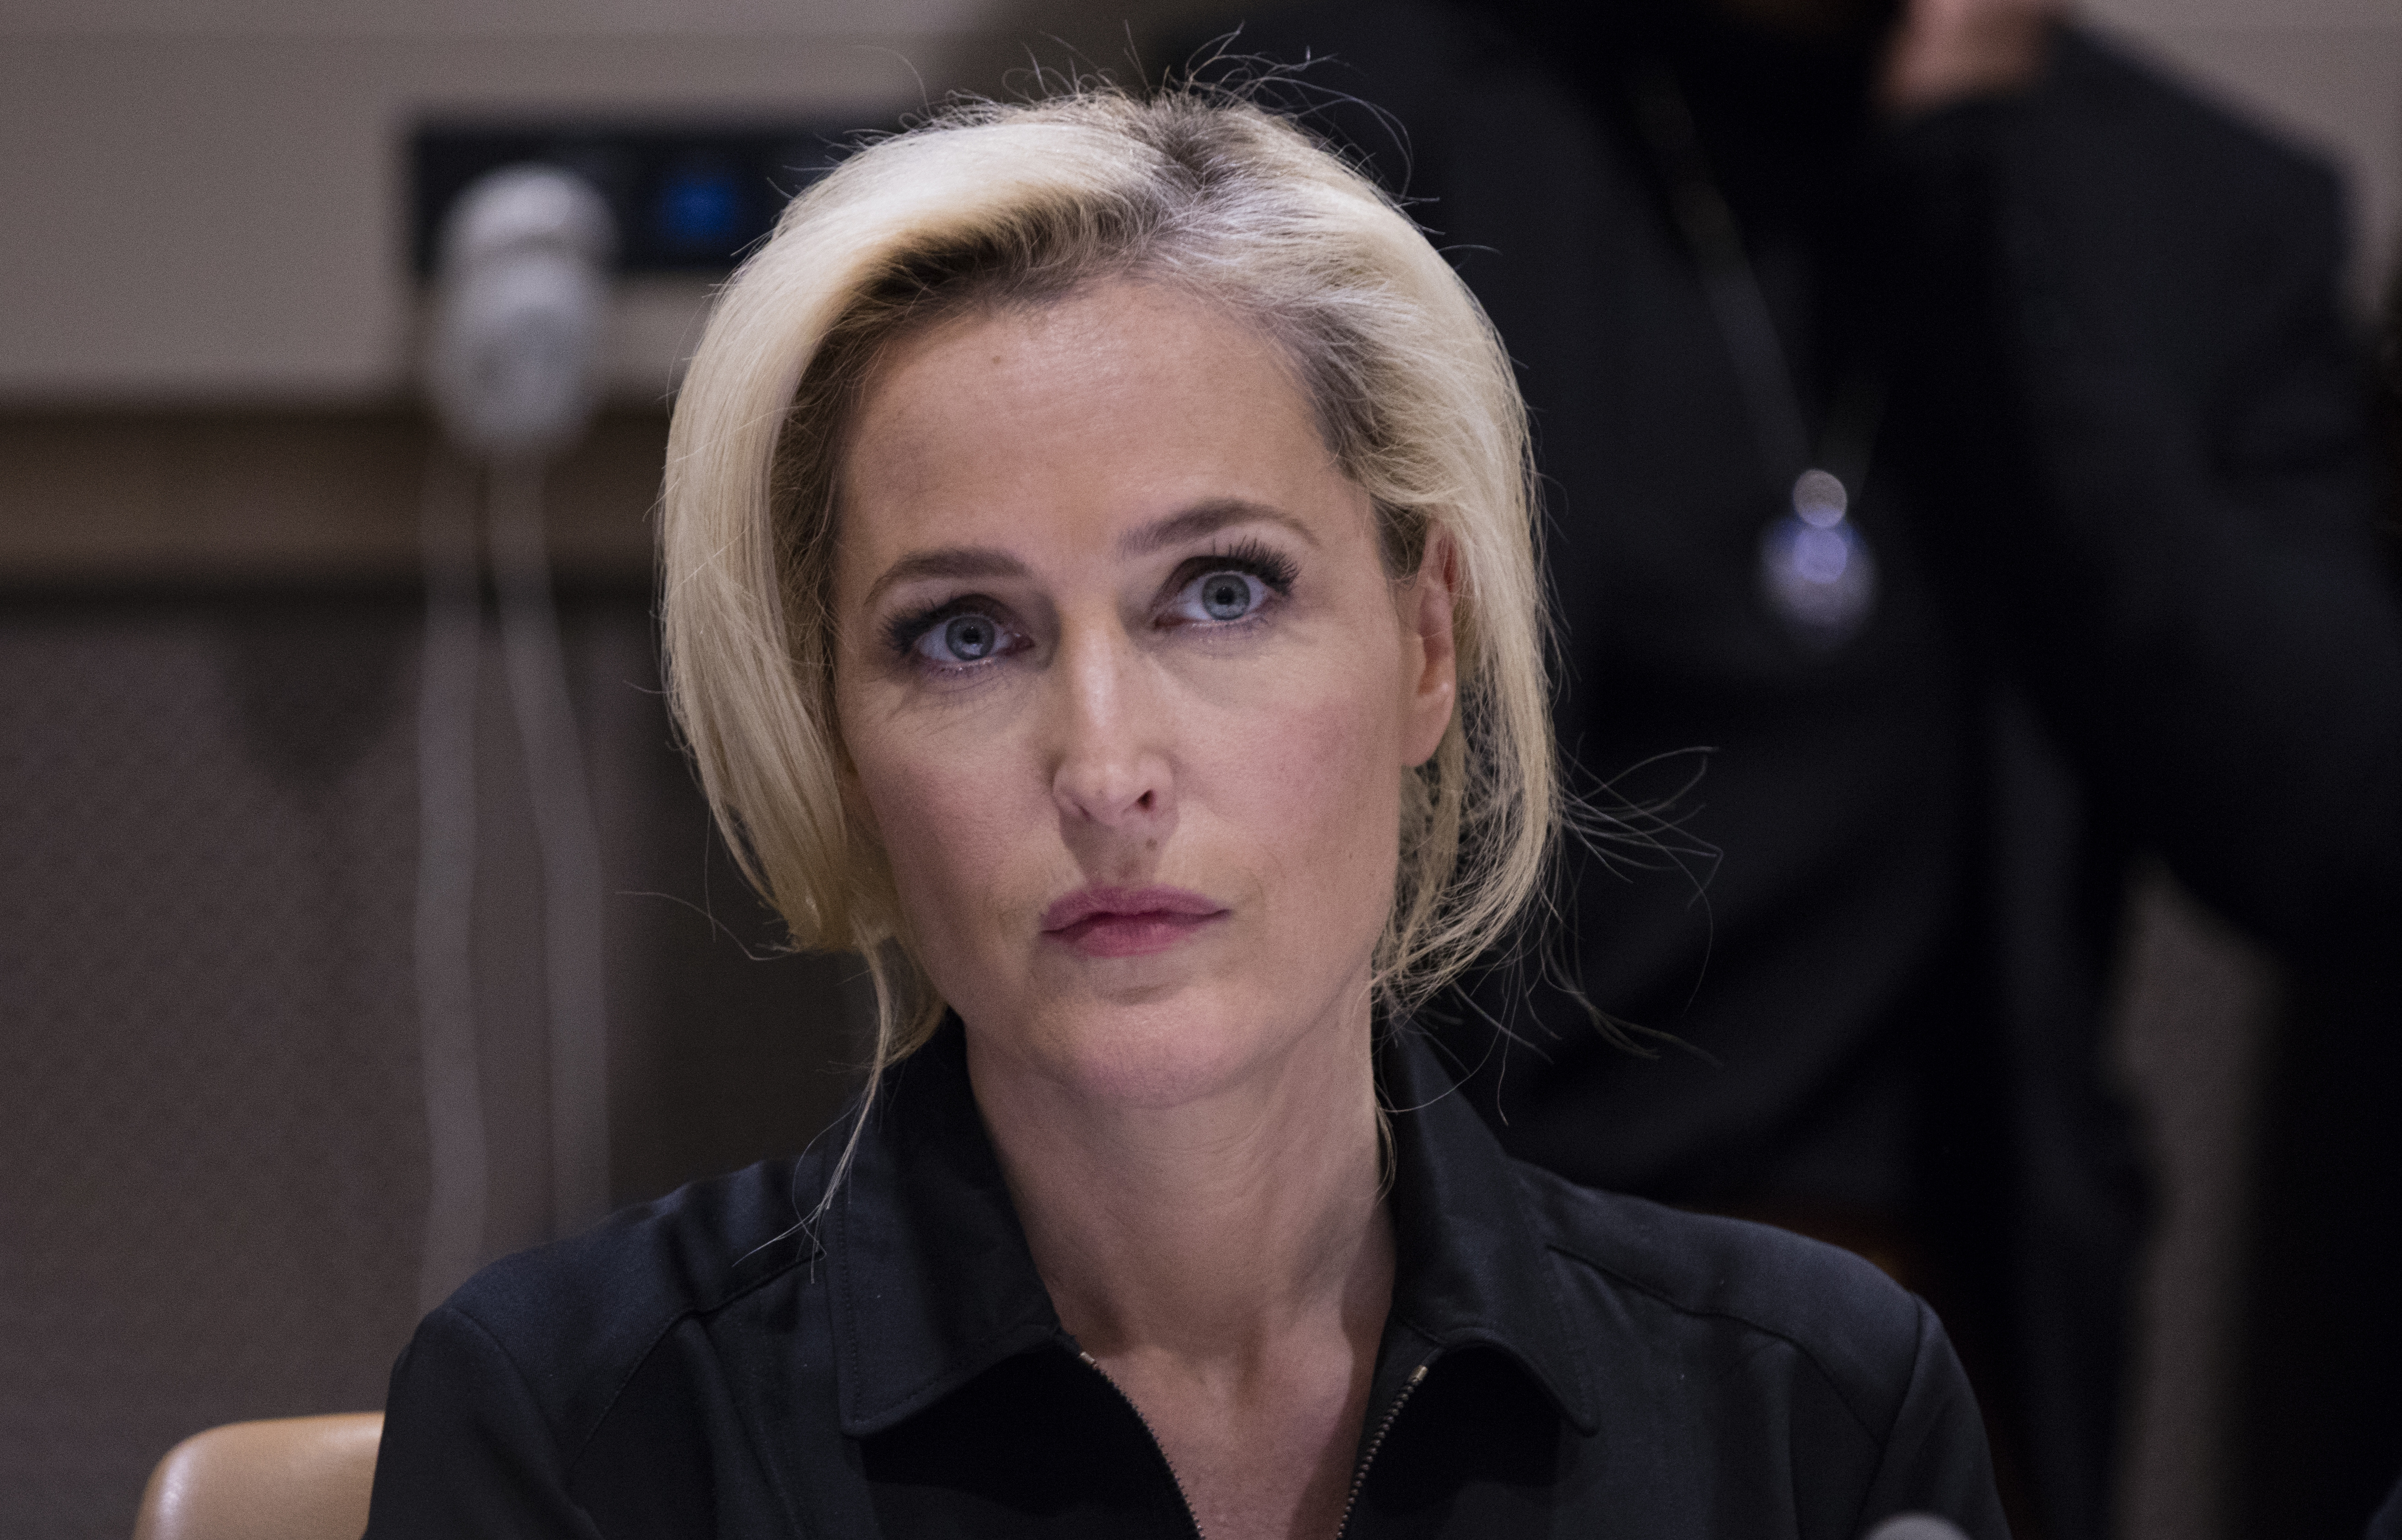 Award-winning actress Gillian Anderson (from the X-Files)